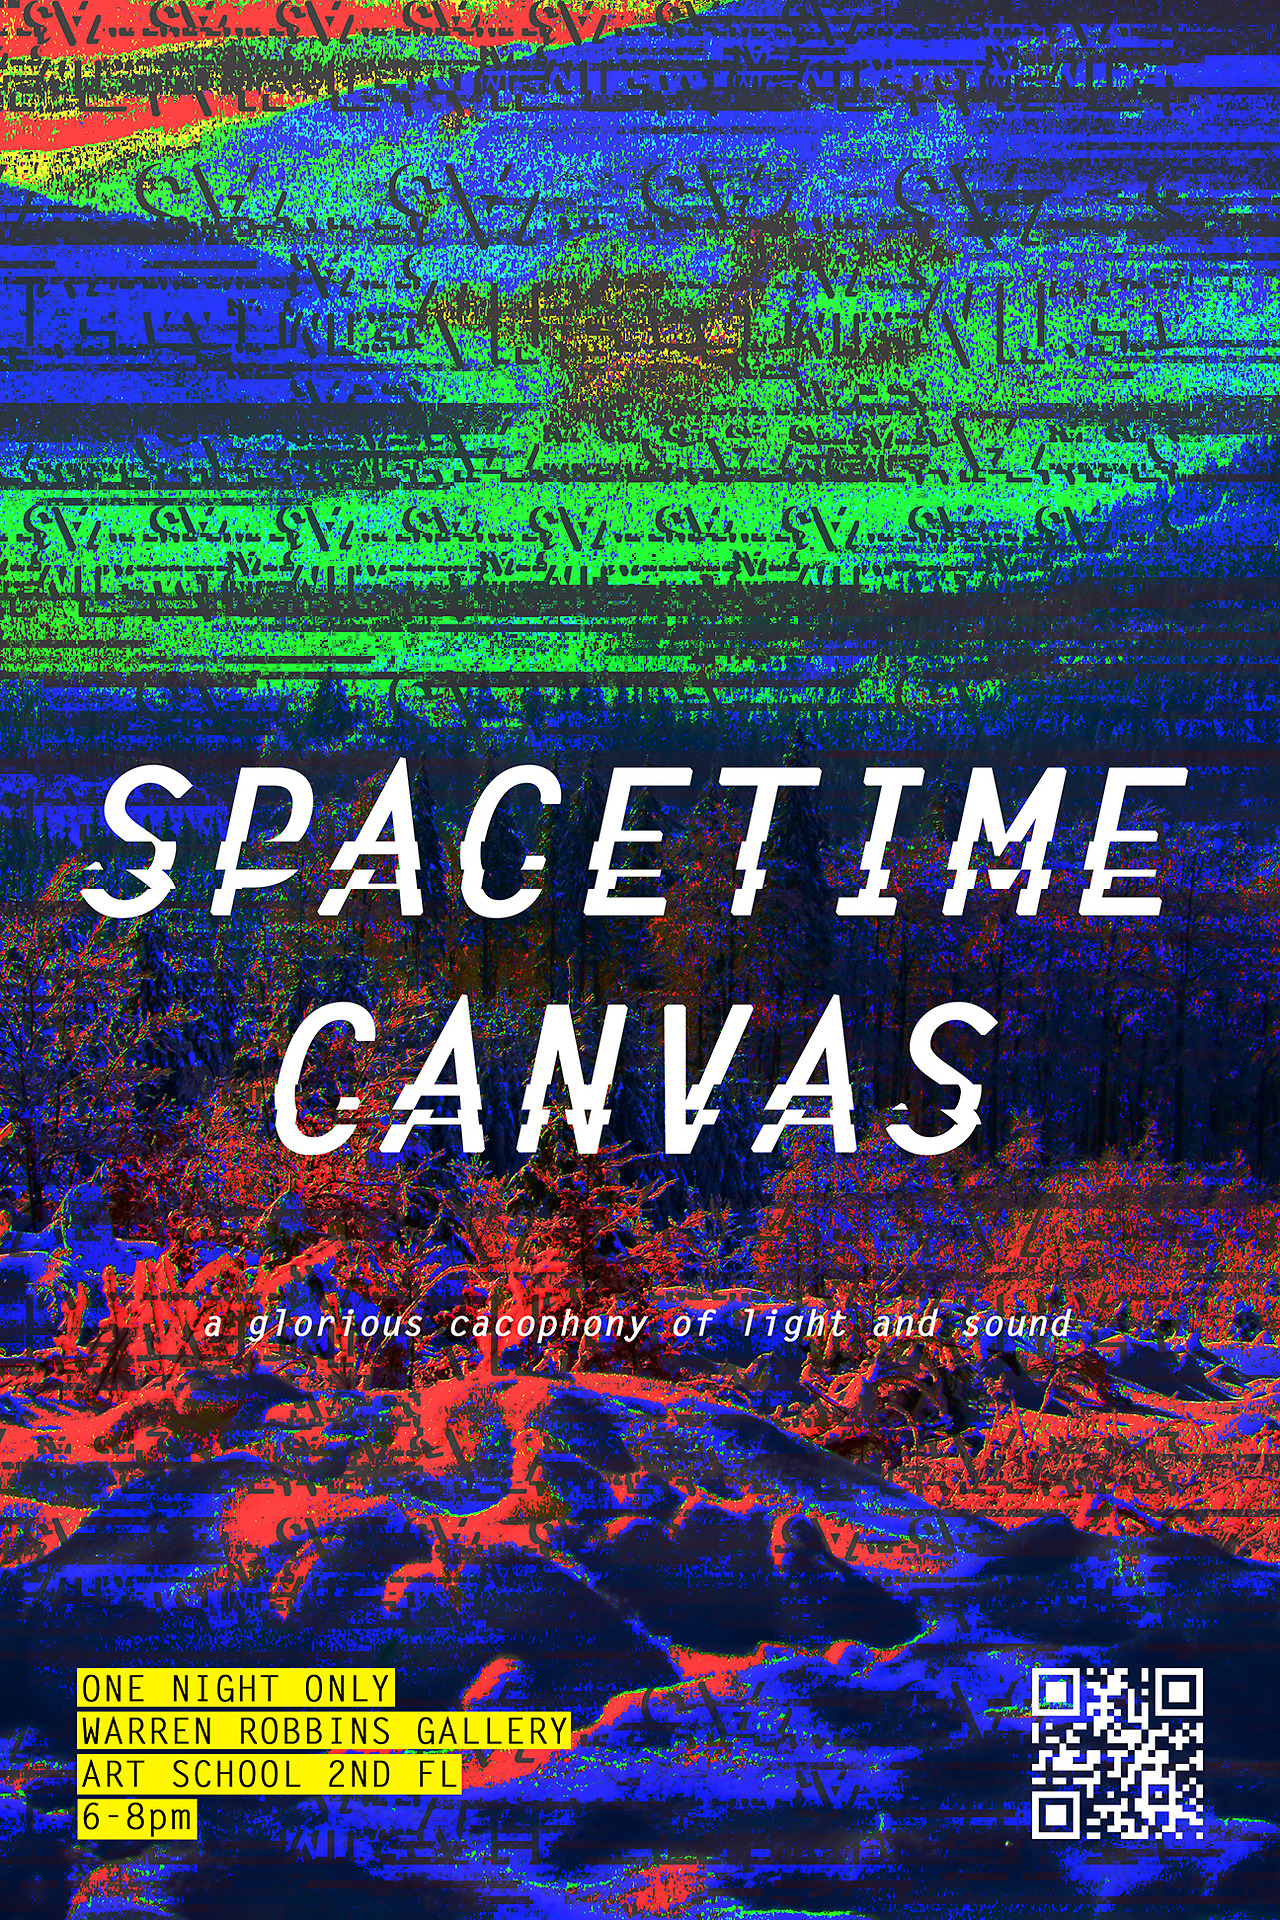 one night. one gallery. A BUNCH OF PROJECTORS.    SPACETIME CANVAS  is a projector show happening on January 24, 6-8pm. Anyone interested in film, animation, projection mapping, sculpture, audio, performance, multimedia, time, etc. can submit! (Bonus points for creativity: You can project on sculptures, paintings, people, dancing people, water, mirrors…) Together we will orchestrate a glorious cacophony of light and sound. People will literally stand in/walk through/live and breathe your art.  The art school can graciously provide some projectors (will have a number soon) but if you can Bring Your Own or make one cheaply out of a shoebox and magnifying glass [ http://  content.photojojo.com/diy/  turn-your-phone-into-a-phot  o-projector-for-1/ ] even better!         ***currently accepting [video] art submissions (to beiatrix@umich.edu) until 1/17/14.*** ***open to public 1/24/14 6pm-8pm @ warren robbins gallery (art school 2nd floor).***